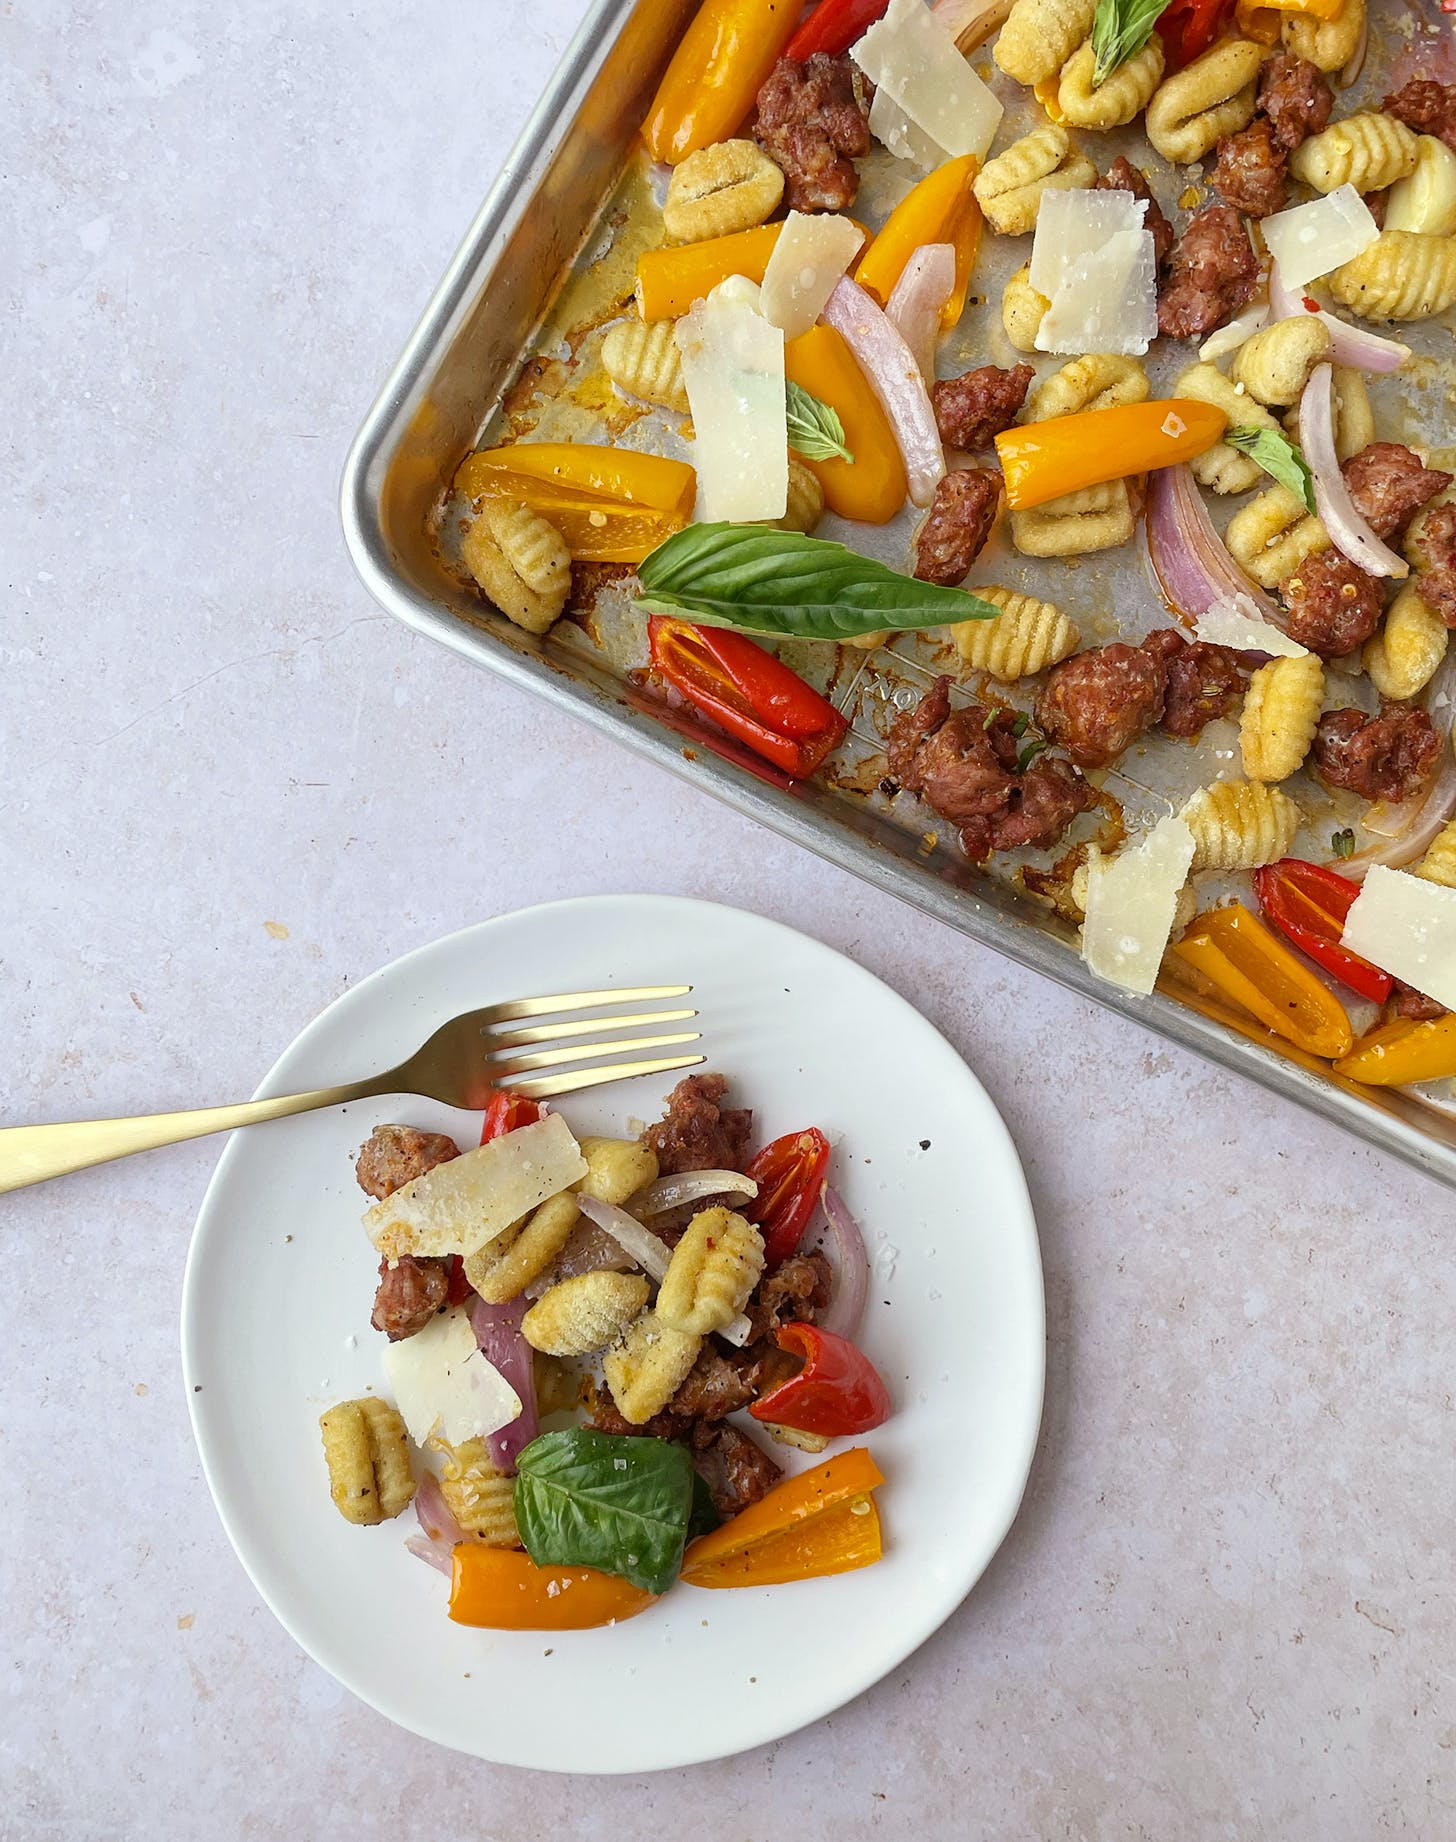 Sheet-Pan Gnocchi with Sausage, Peppers and Onions